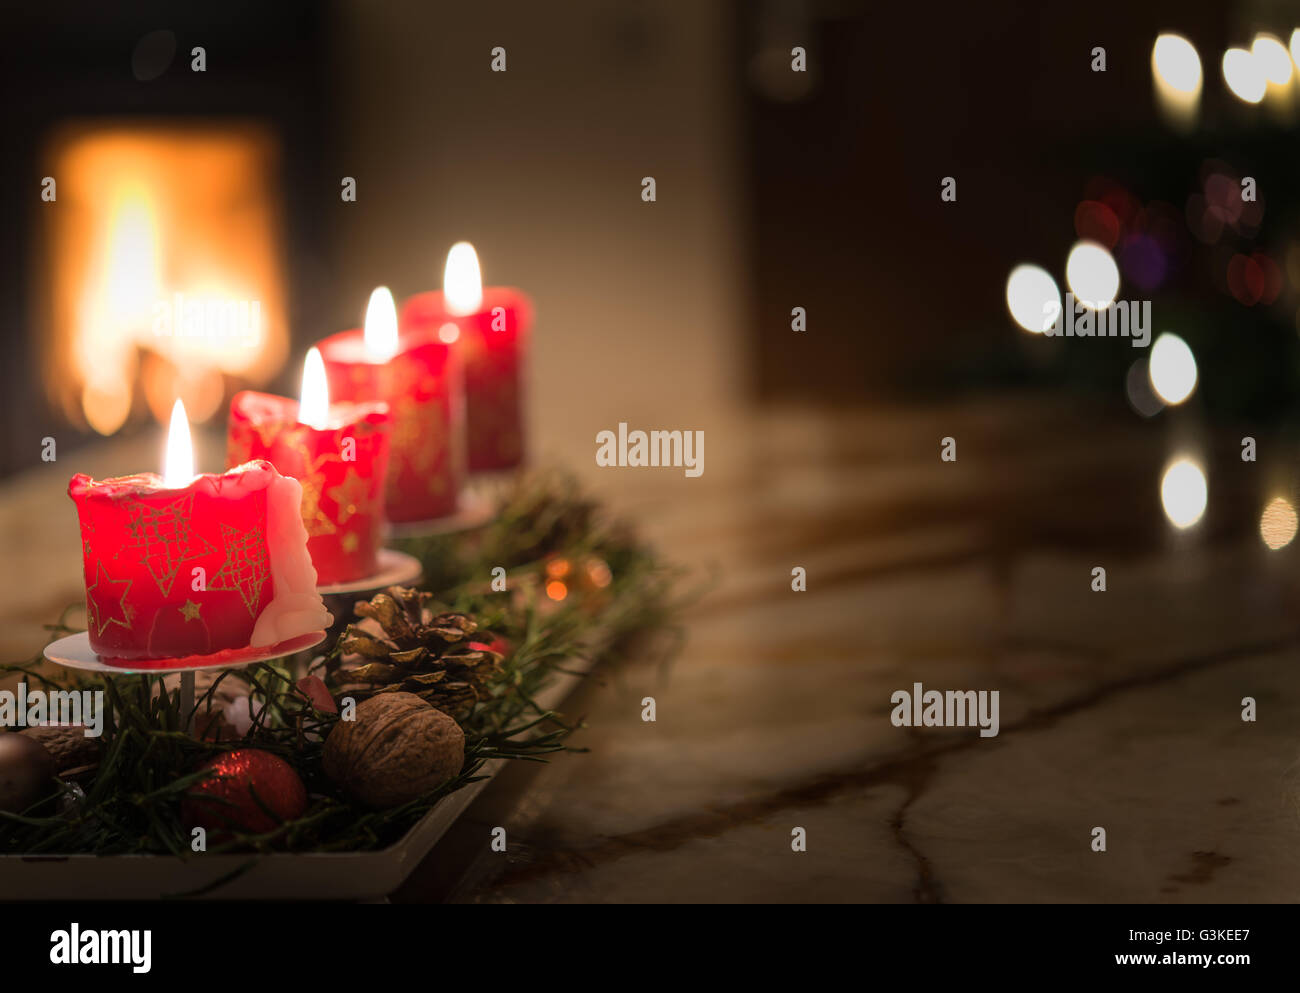 Advent candles with Christmas tree and burning chimney fire - Stock Image